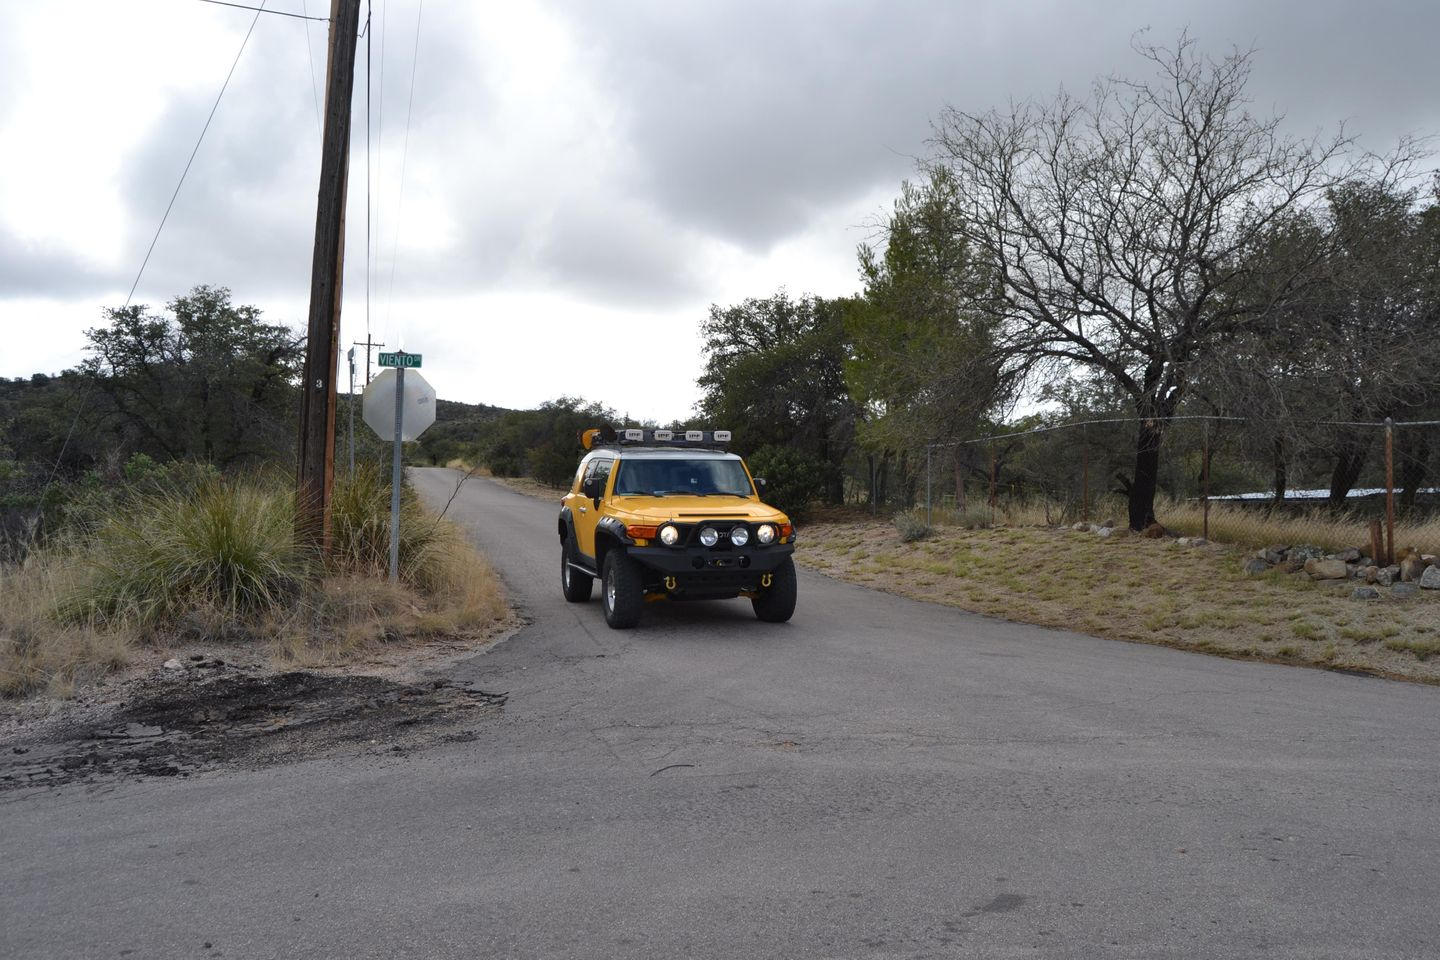 Charouleau Gap / FR# 736 - Waypoint 41: Callas Dr and N Viento Dr (TURN L)